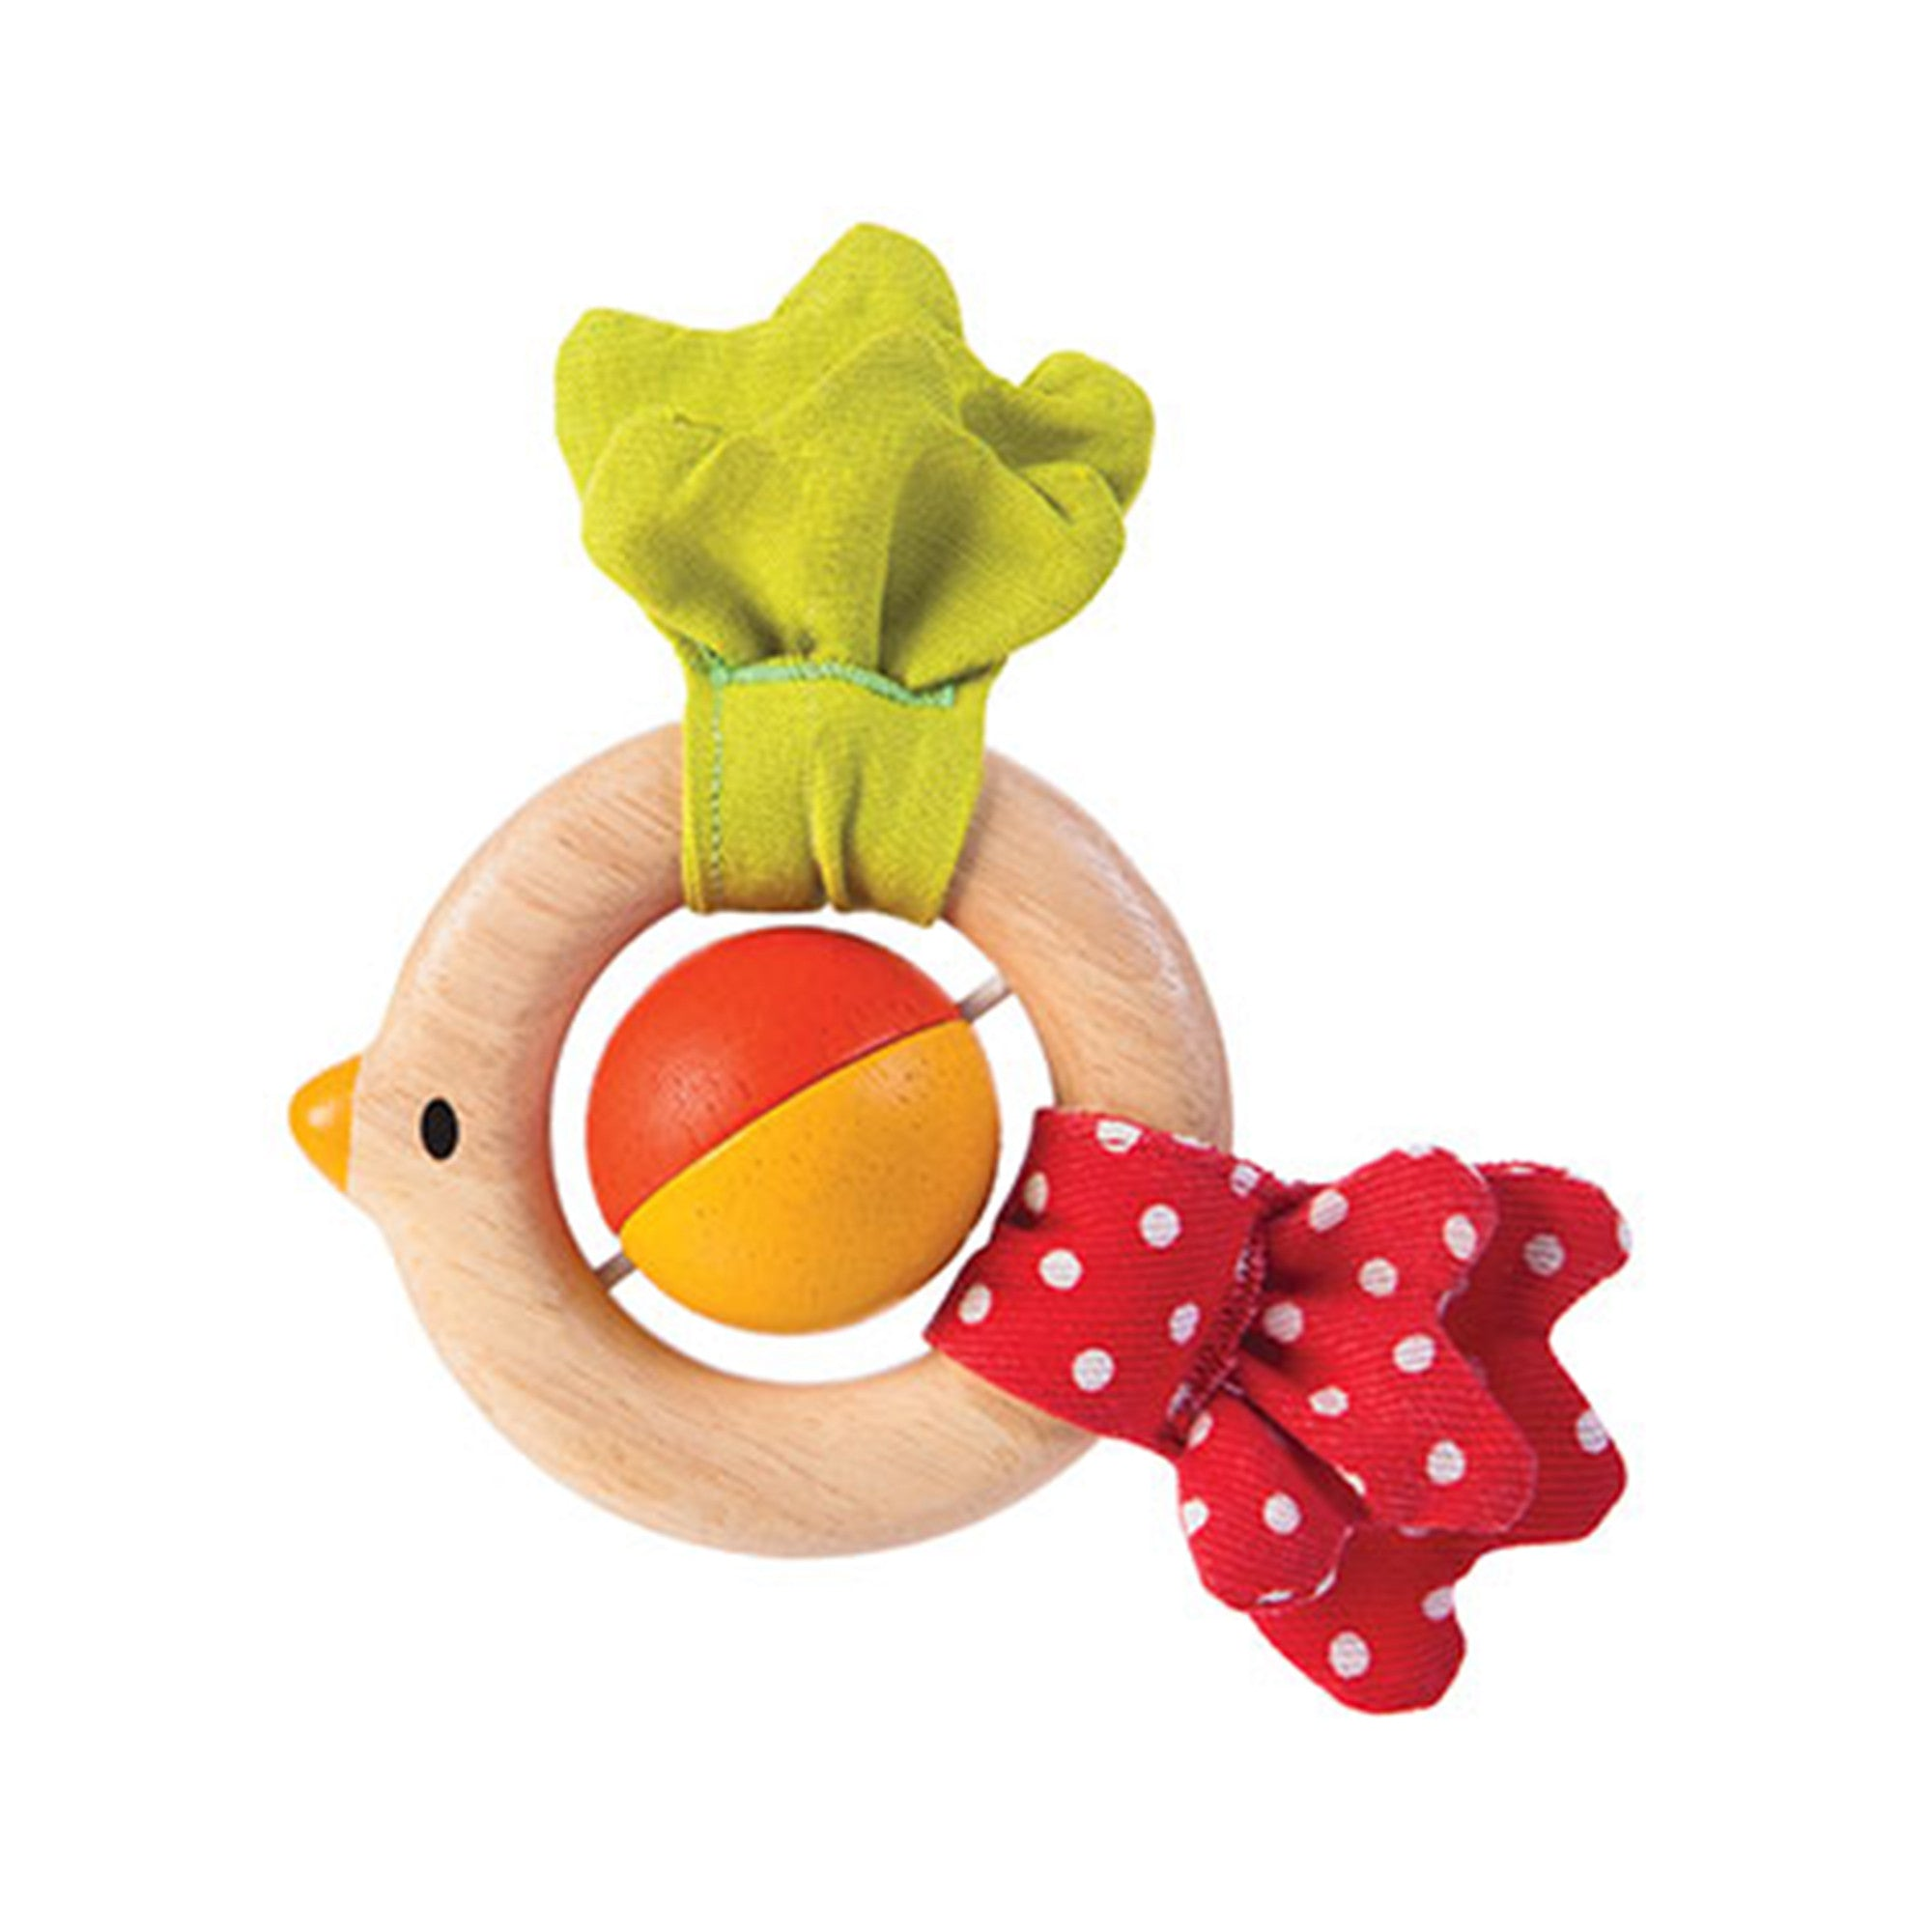 Plan Toys Bird Rattle PlanToys Rattles at Little Earth Nest Eco Shop